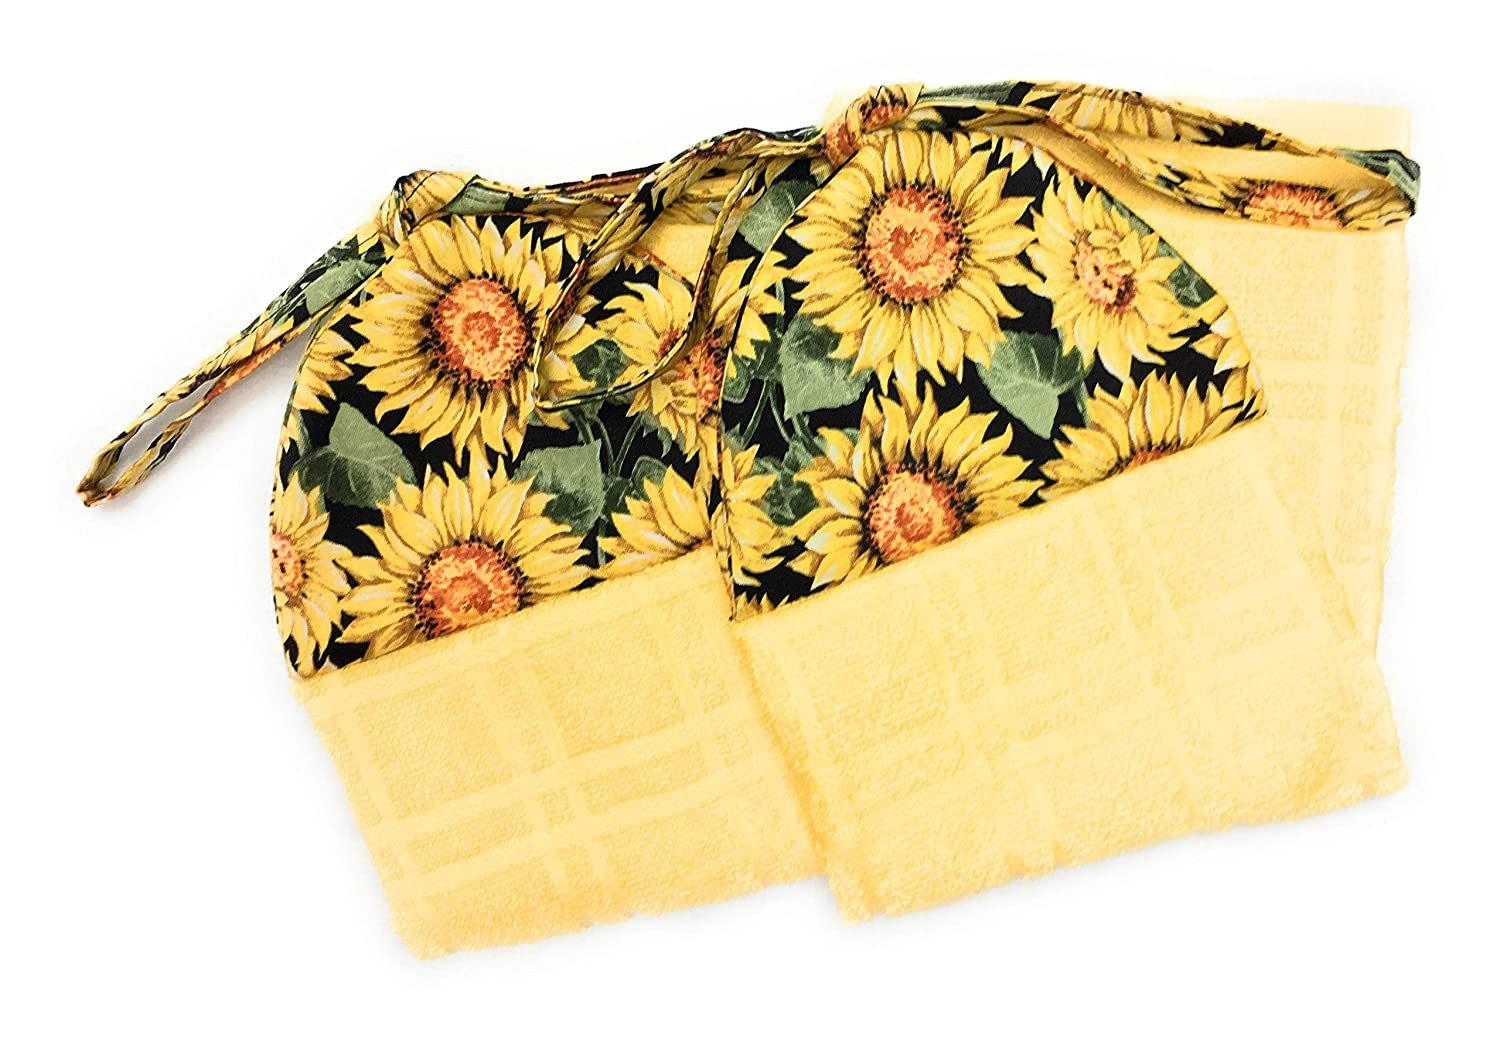 Set of 2 Yellow and Orange Sunflowers With Green Leaves on Black Fabric Ties On Stays Put Yellow Kitchen Hanging Loop Hand Dish Towel